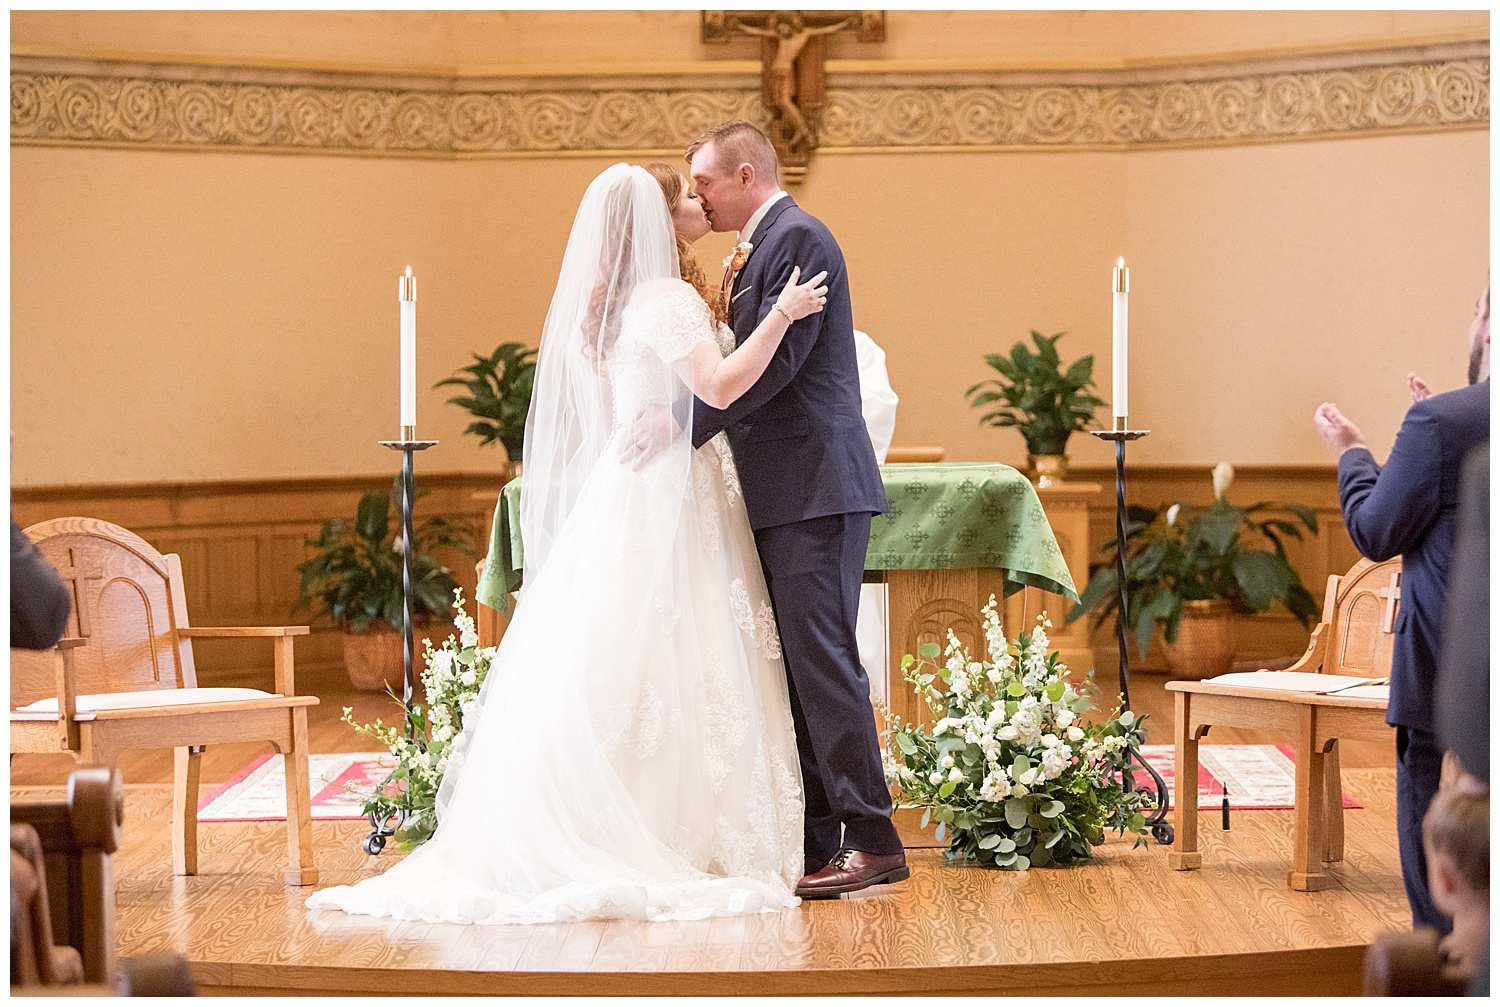 St. Francis of Assisi wedding